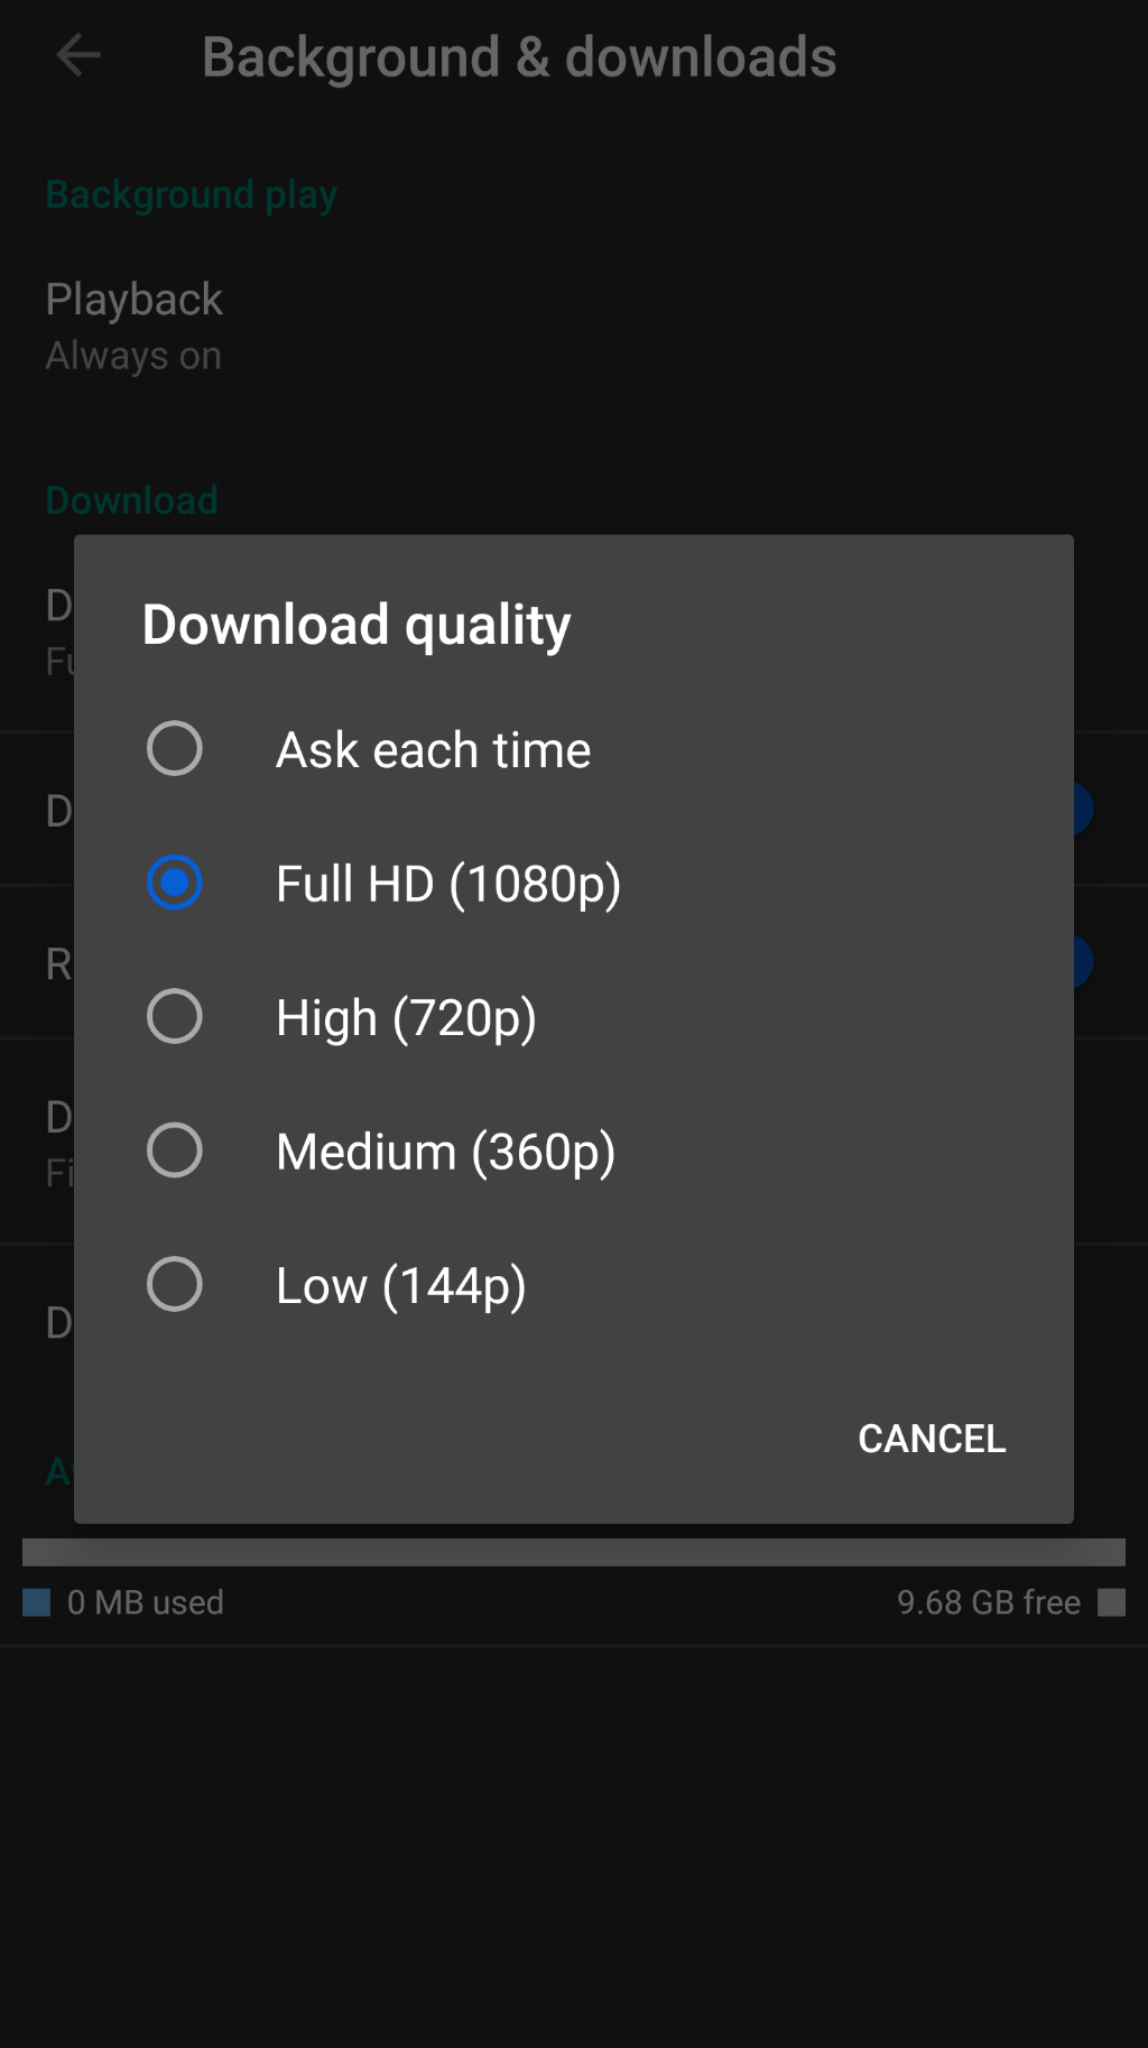 Update: Spotted on Android] YouTube Premium getting 1080p offline